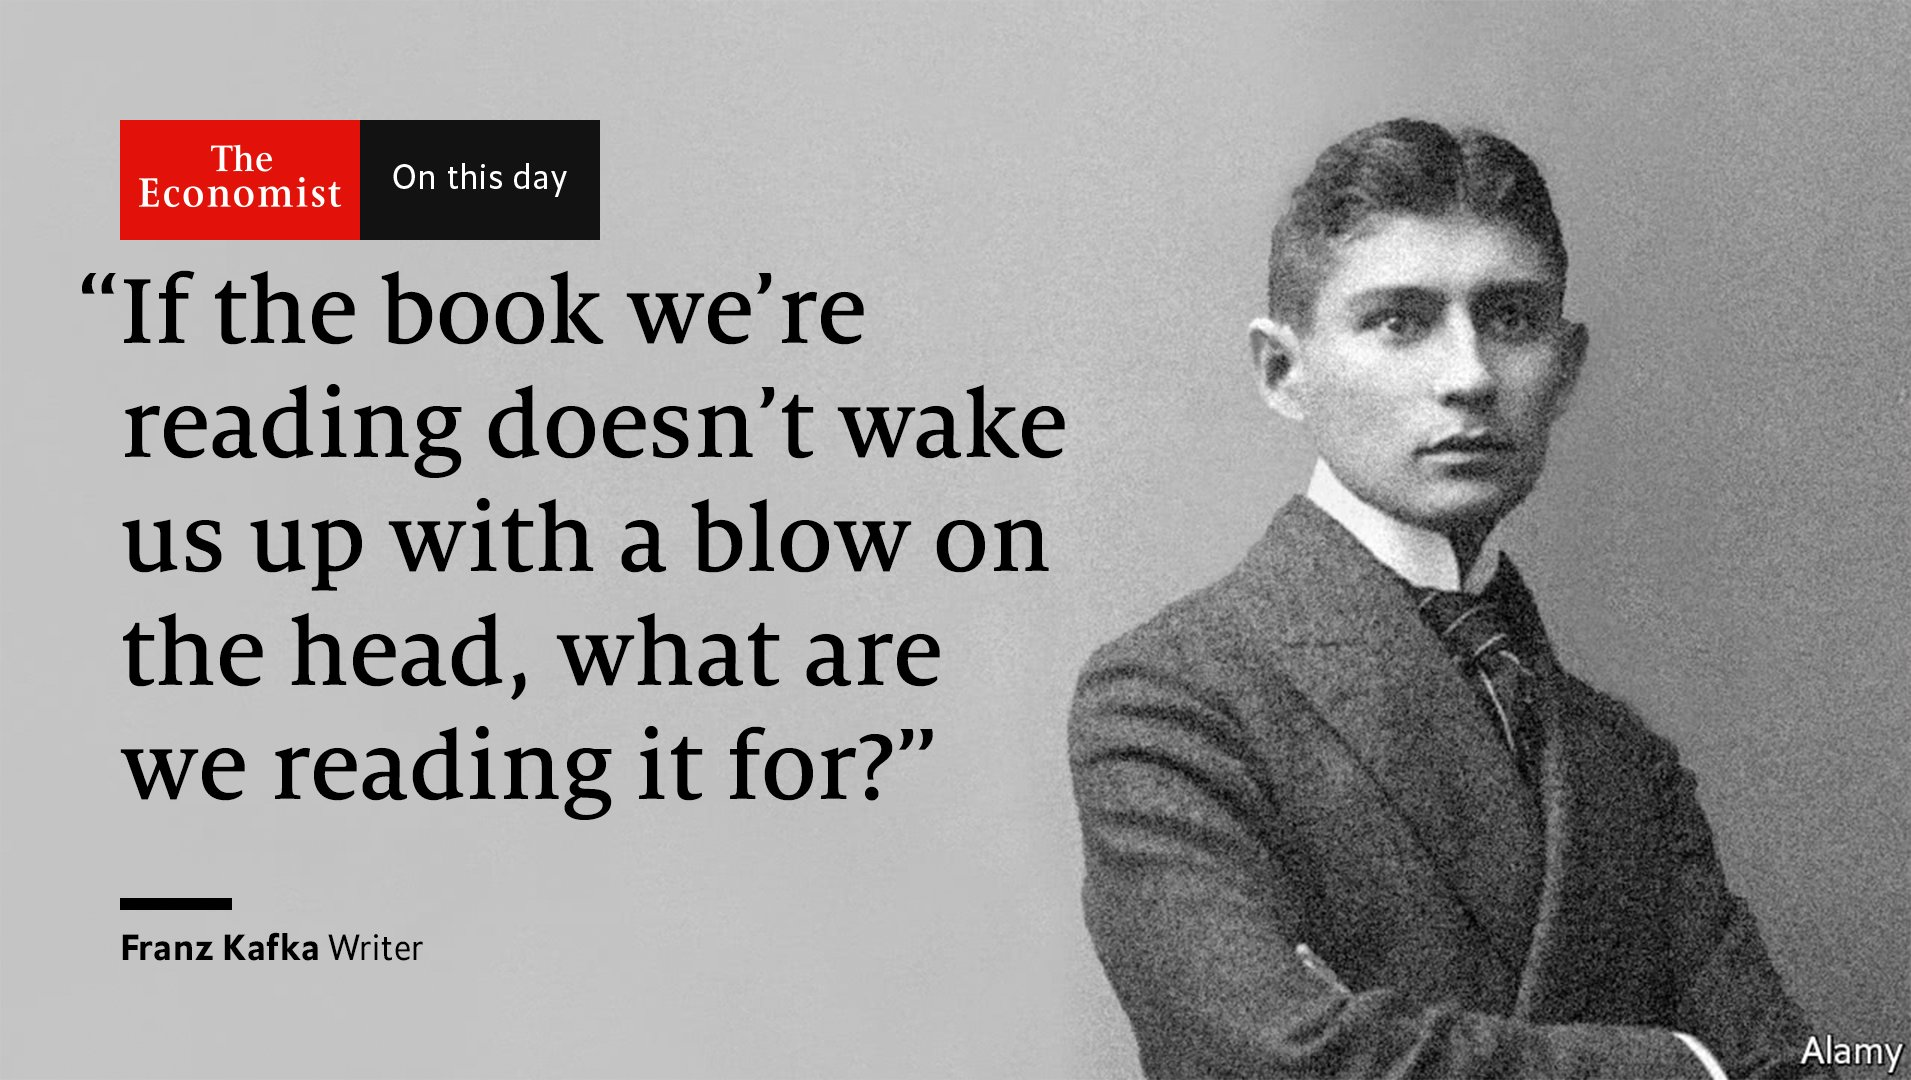 Franz Kafka was born #OnThisDay 1883. He depicted the world as he saw it, full of lonely and persecuted individuals https://t.co/WTJ93I04eK https://t.co/HhlyPMFvJG